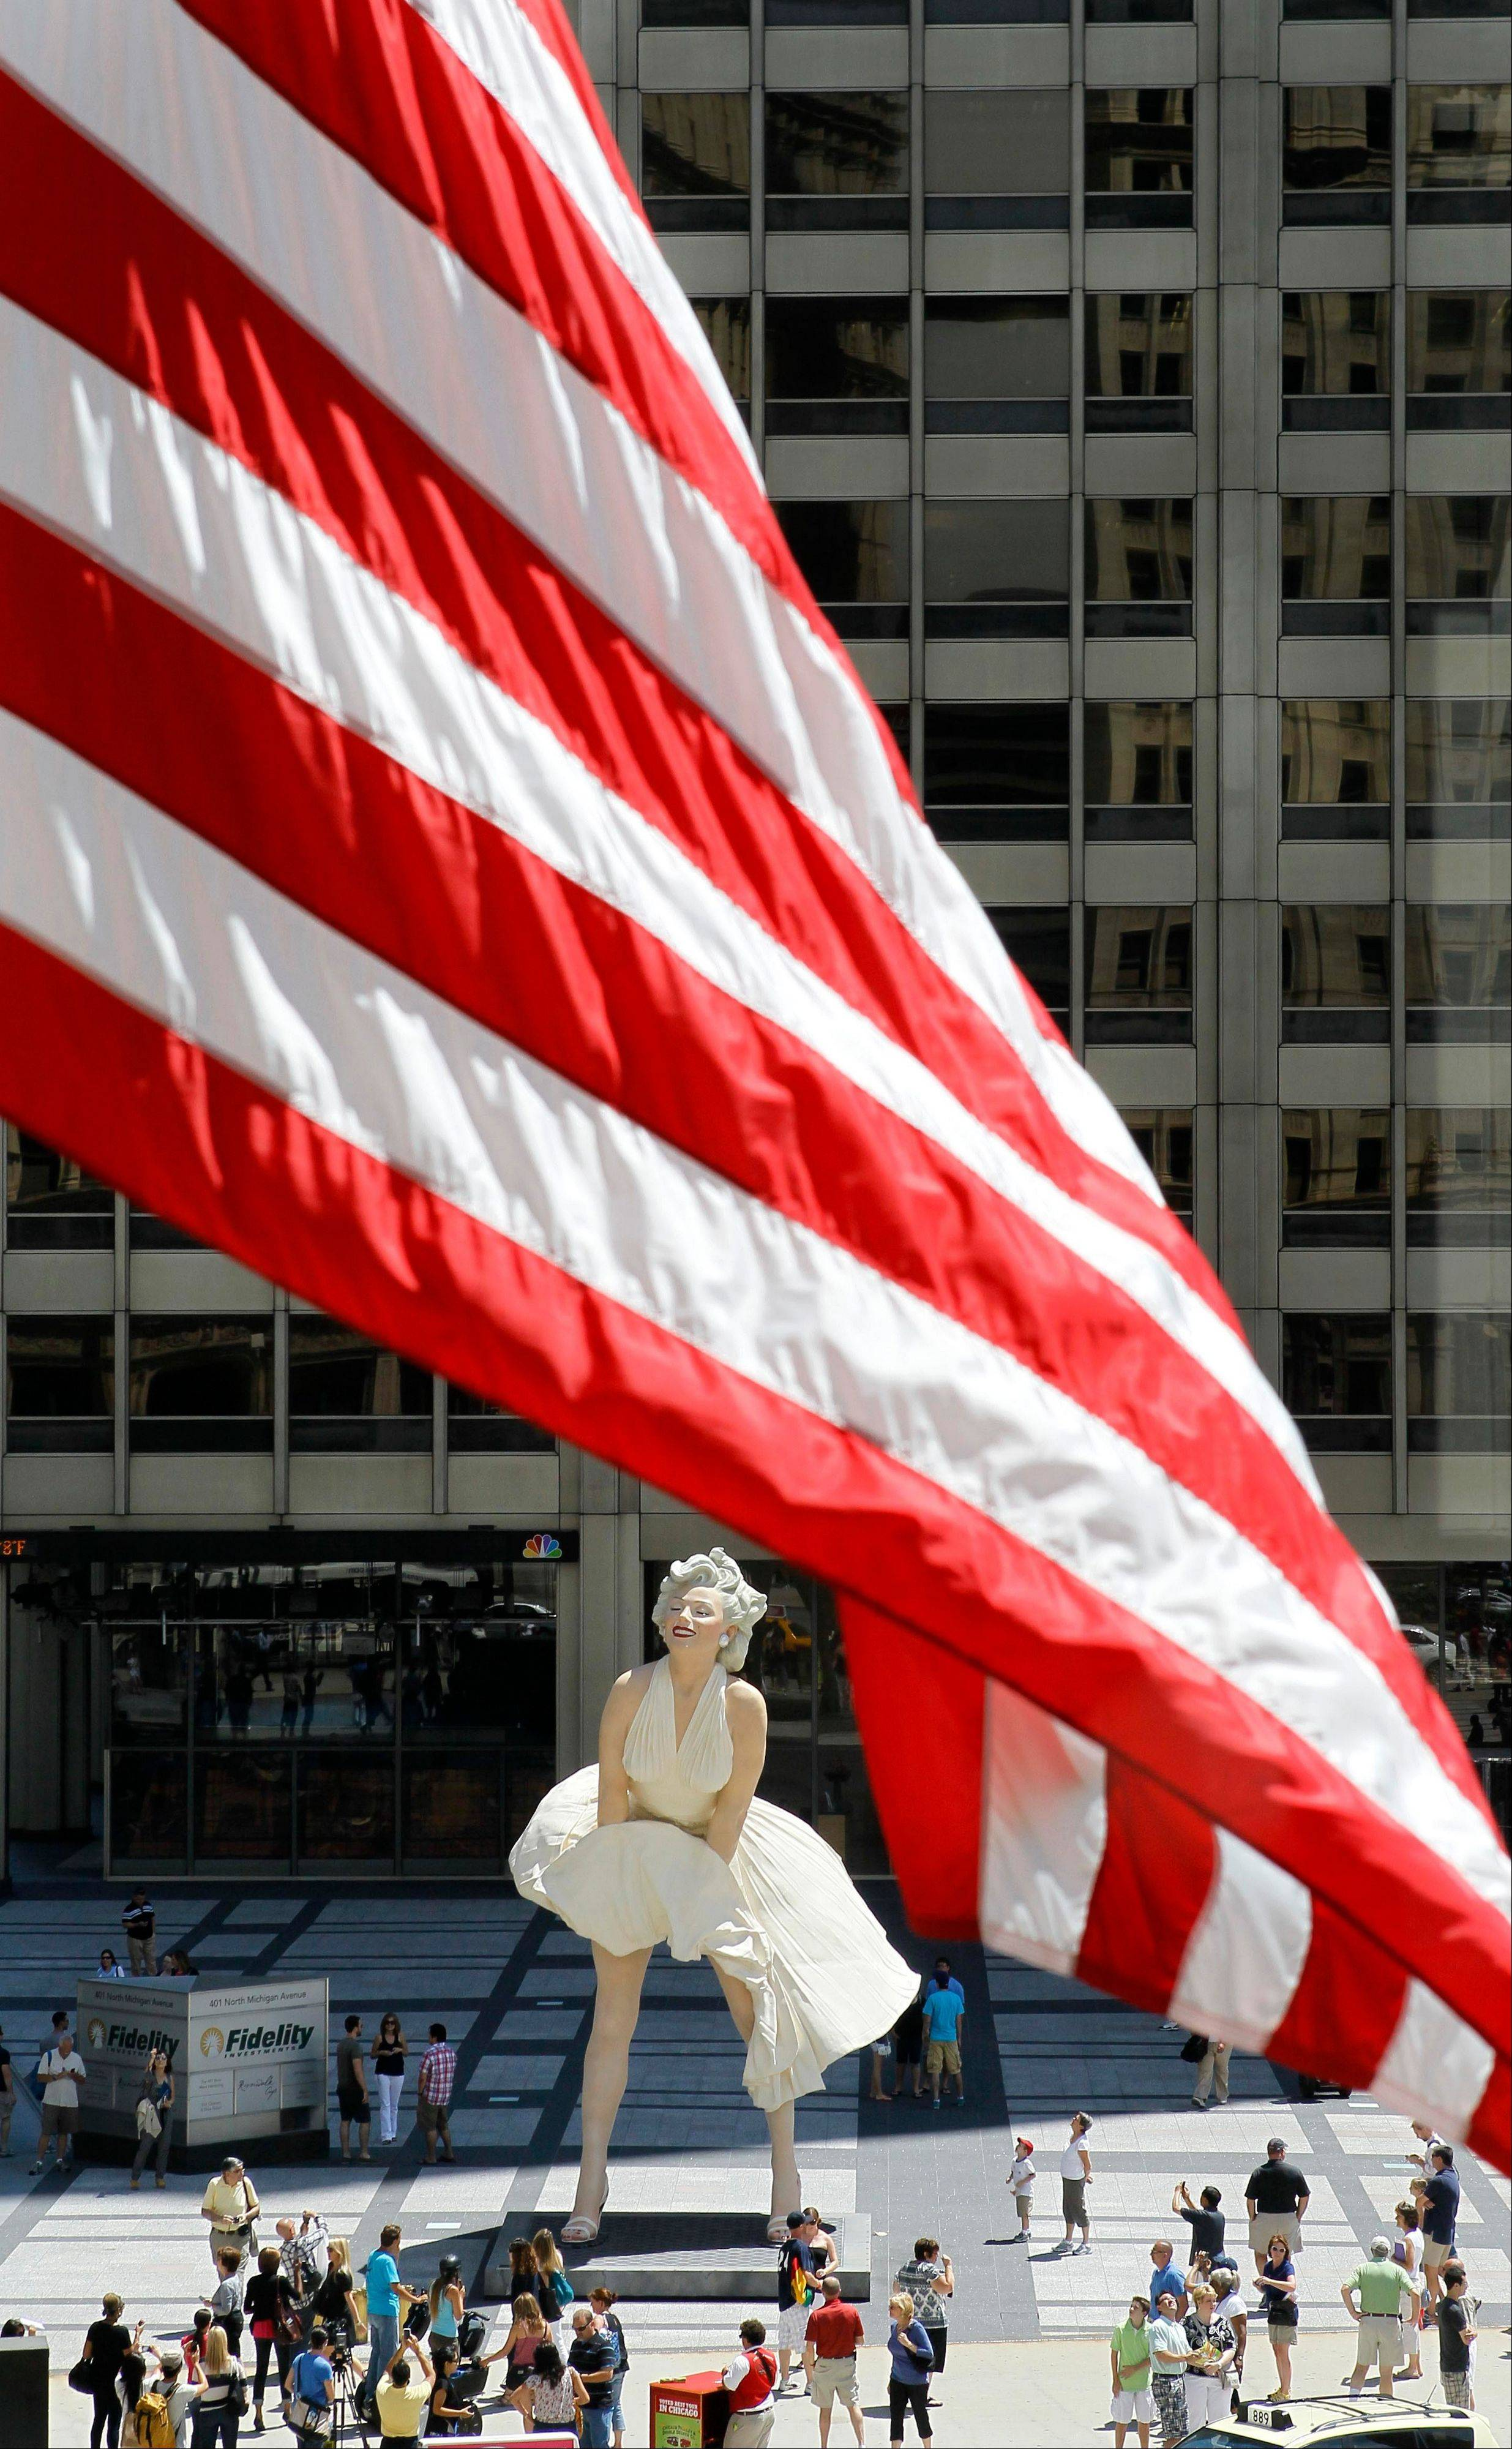 An American flag flying off the Wrigley Building is seen with Seward Johnson's 26-foot-tall sculpture of Marilyn Monroe, in her most famous windblown pose, across the street on Michigan Ave. in Chicago.